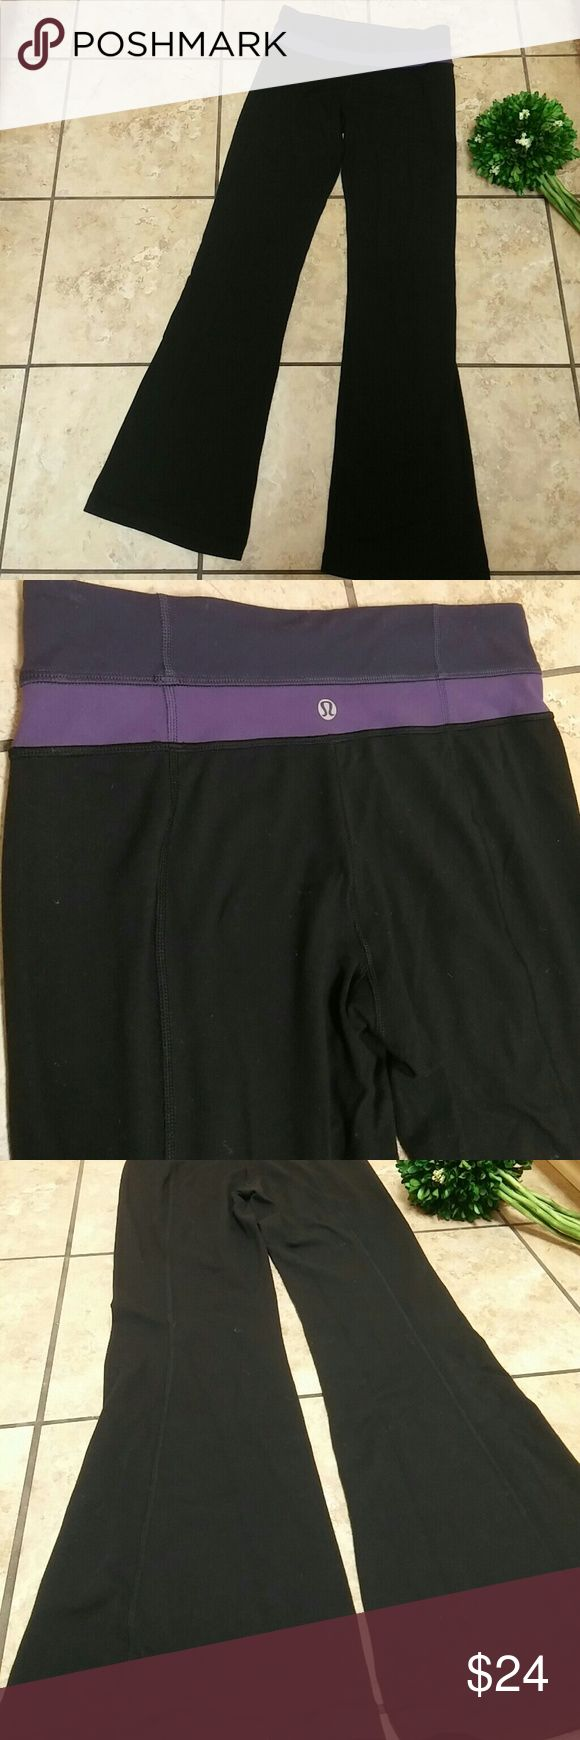 Lululemon workout pants Nice pair of black lululemon workout yoga pants. They have some piling going on and lint that is stuck to it. You need a lint roller and a piling shaver and they will look great. There are no holes and no stains. lululemon athletica Pants Boot Cut & Flare